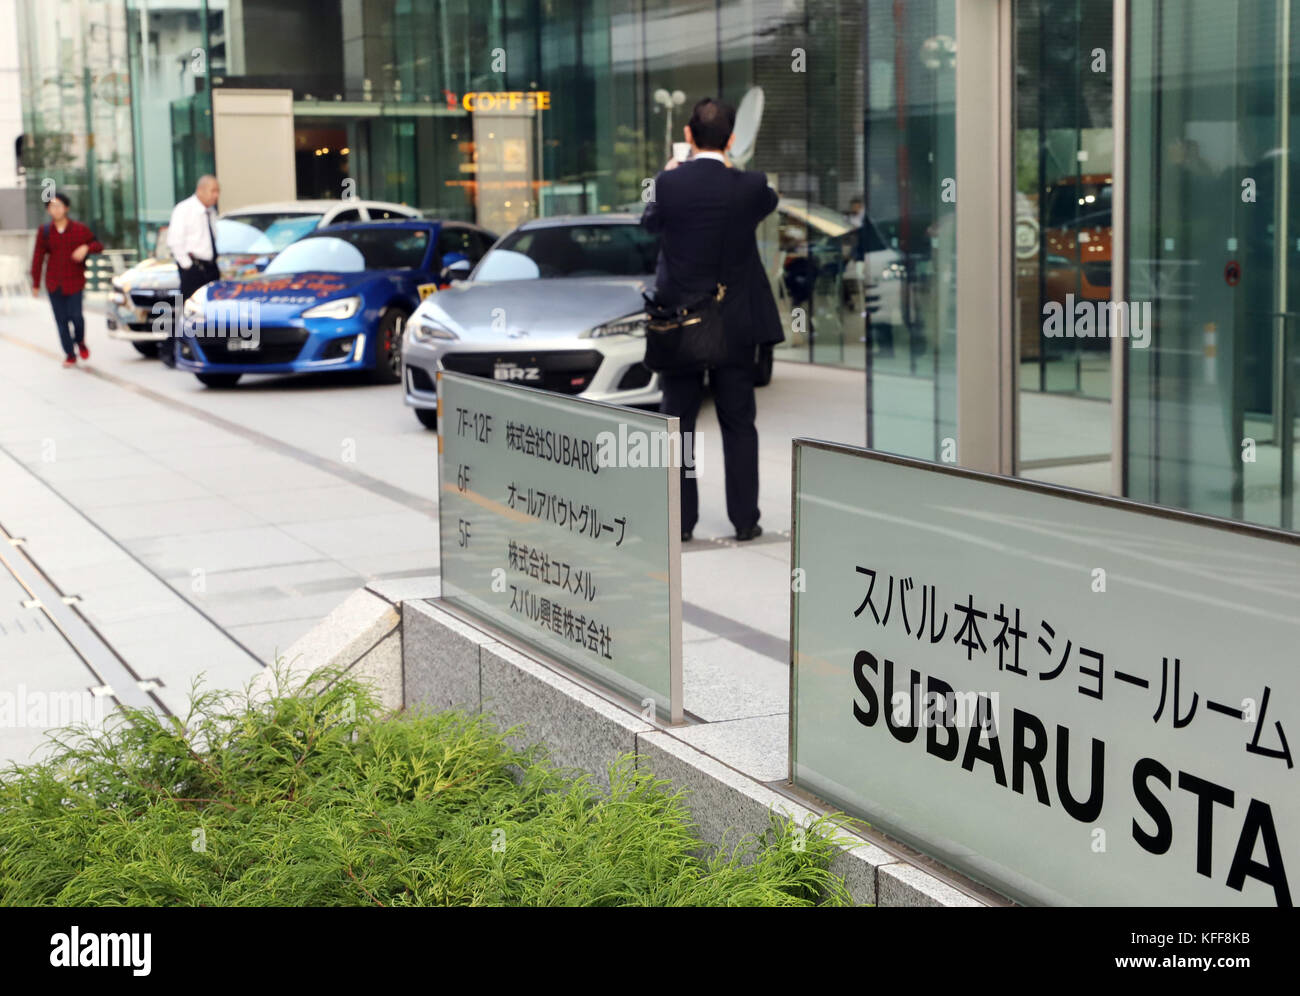 Tokyo, Japan. 27th Oct, 2017. People admire vehicles of Japanese automaker Subaru at the company headquarters in - Stock Image